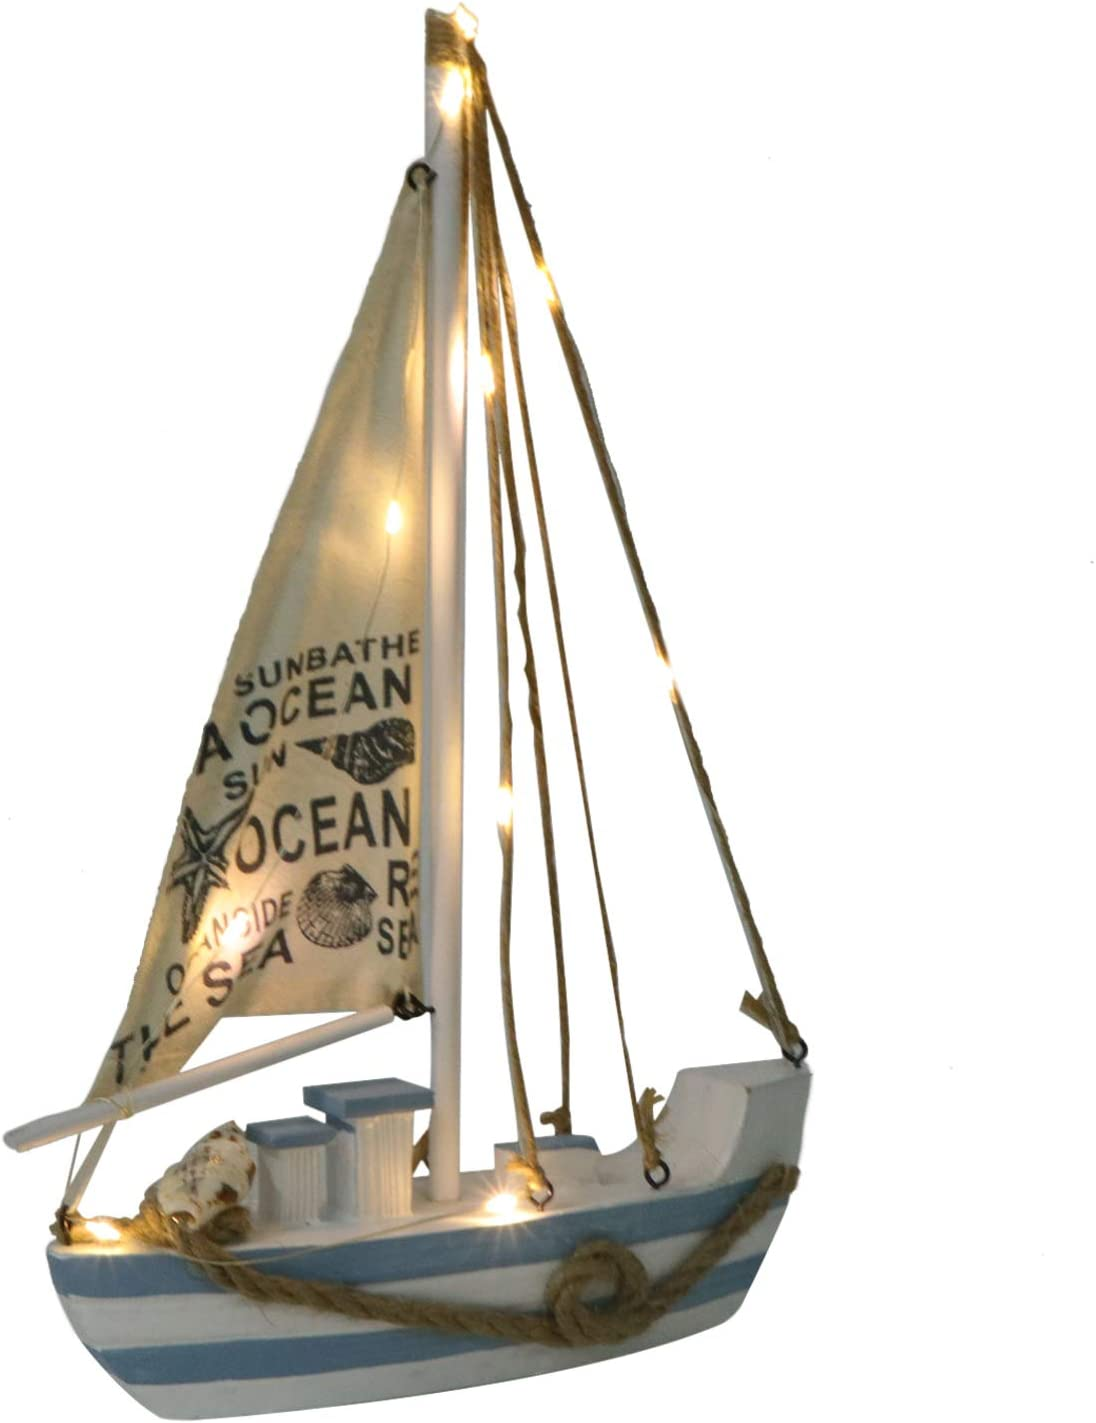 Toddmomy Wooden Sailing Ship Model Mediterranean Sailboat Nautical Decor Light up Vintage Sailing Boat Desktop Ornament Room Party Decoration (Without Battery)